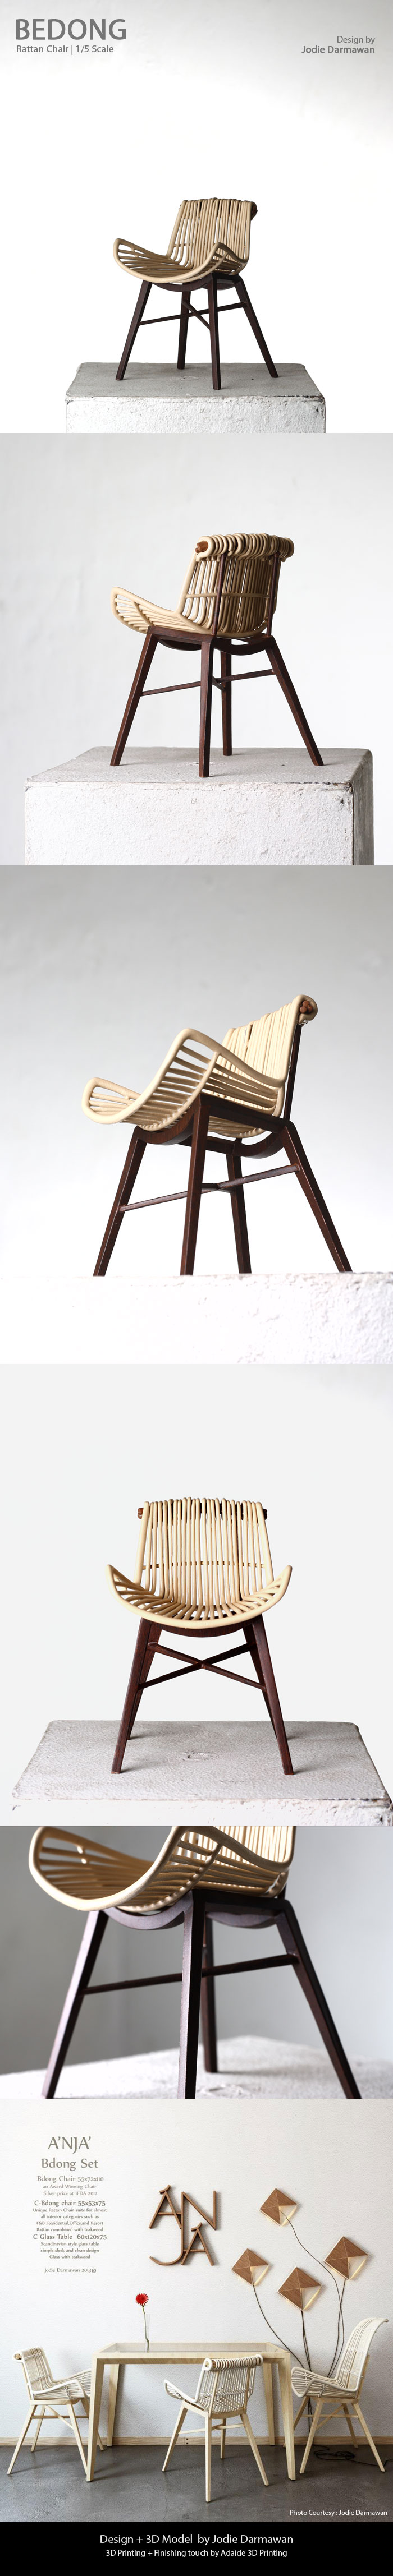 Bedang-Rattan-Chair-web